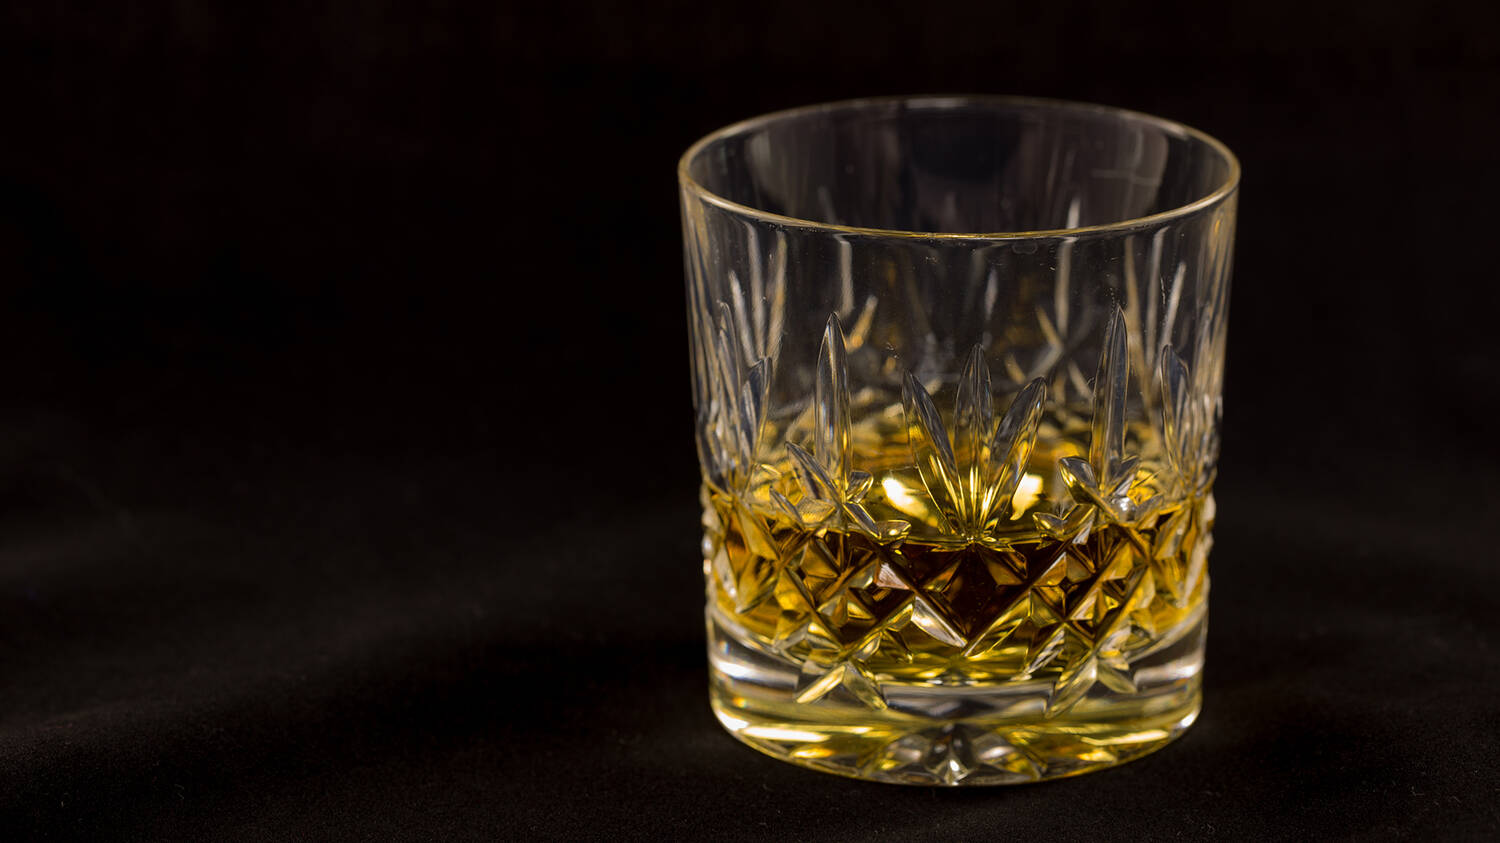 A crystal tumbler is a third full of whisky. It is displayed against a black background.